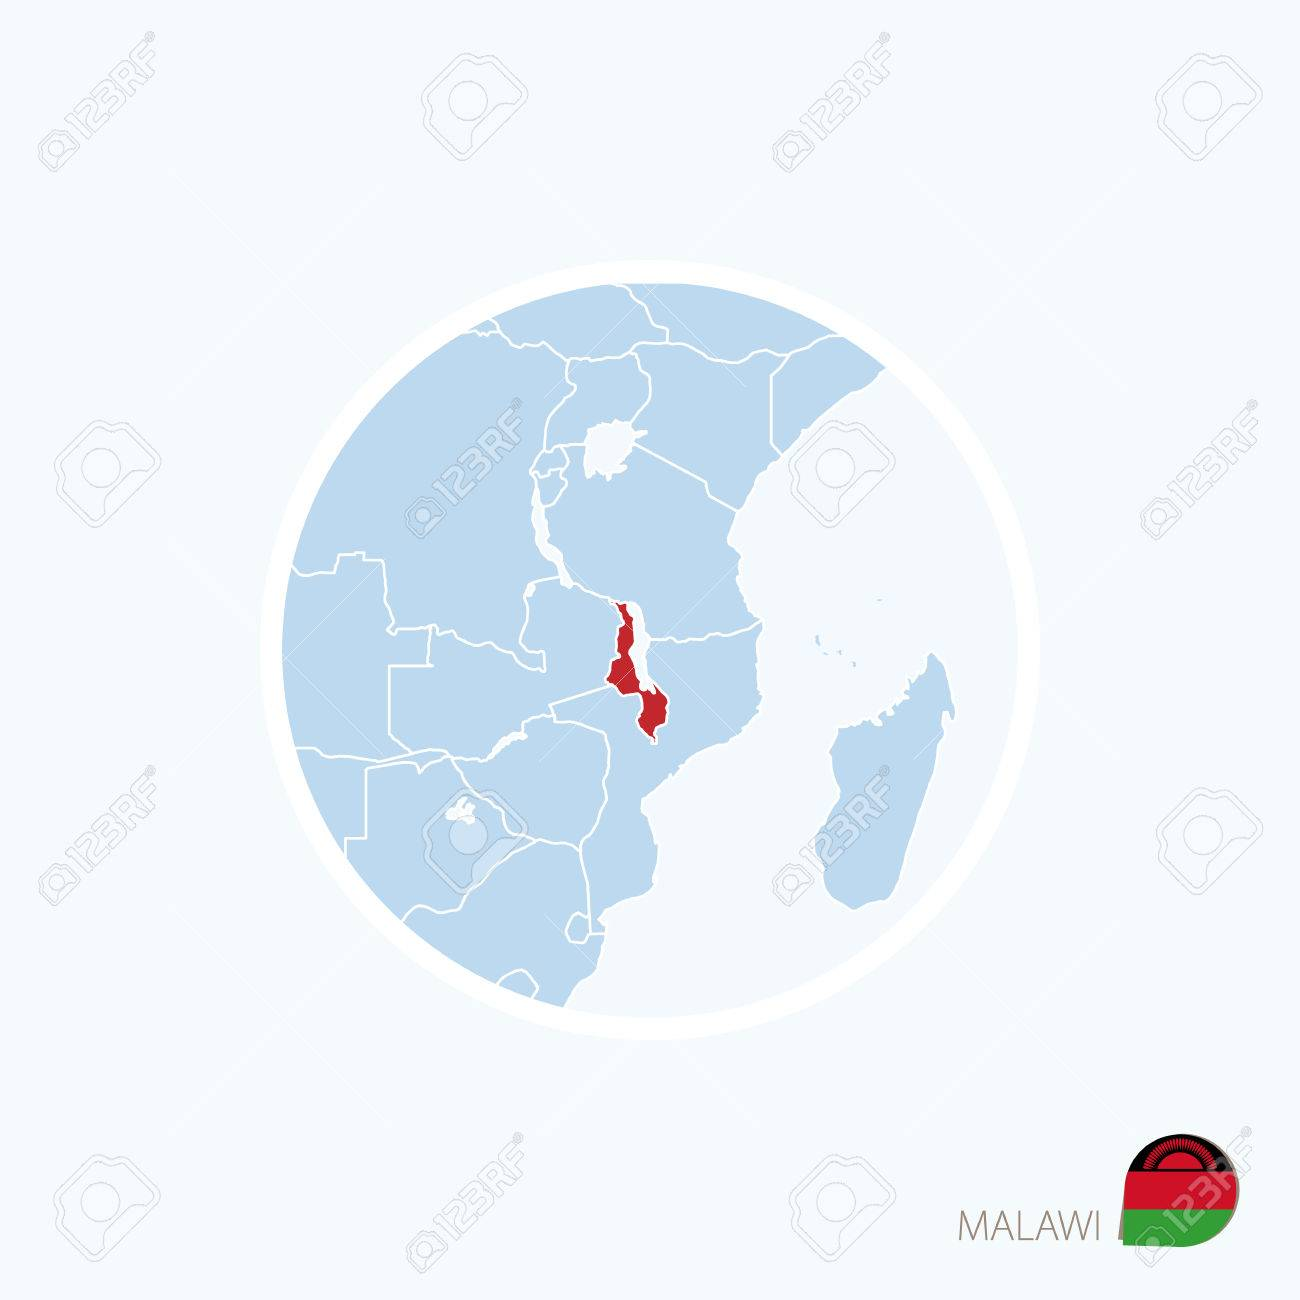 Malawi On Africa Map.Map Icon Of Malawi Blue Map Of Africa With Highlighted Malawi